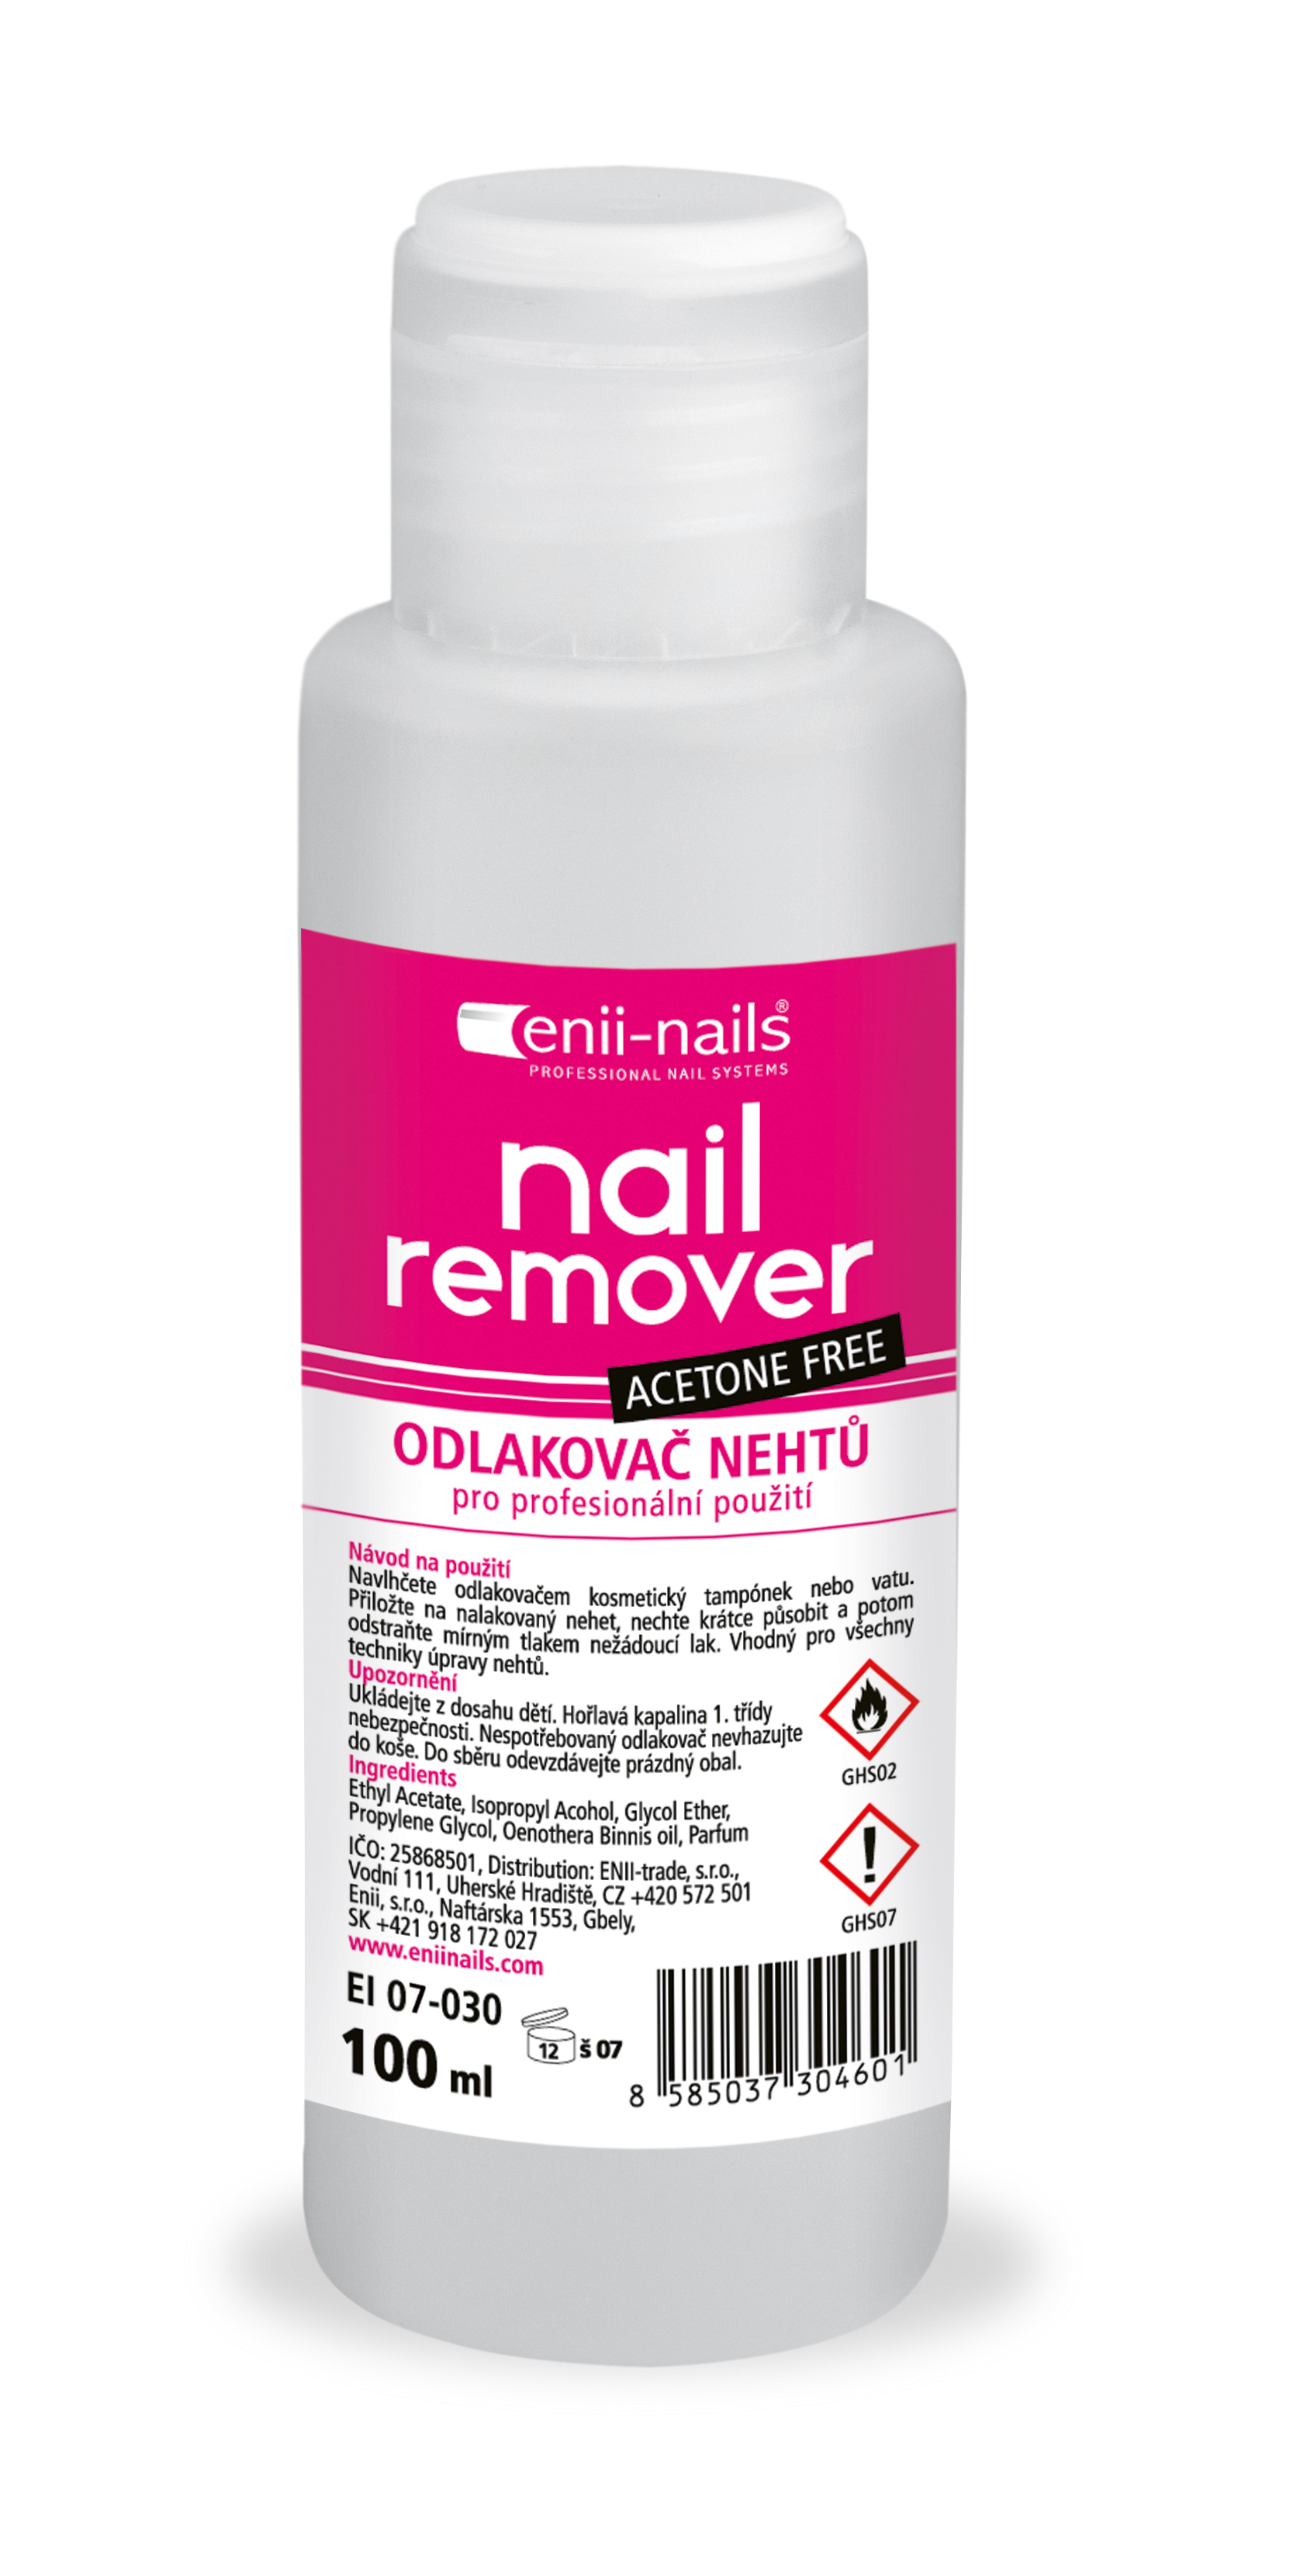 ENII-NAILS Bezacetonový odlakovač 100 ml